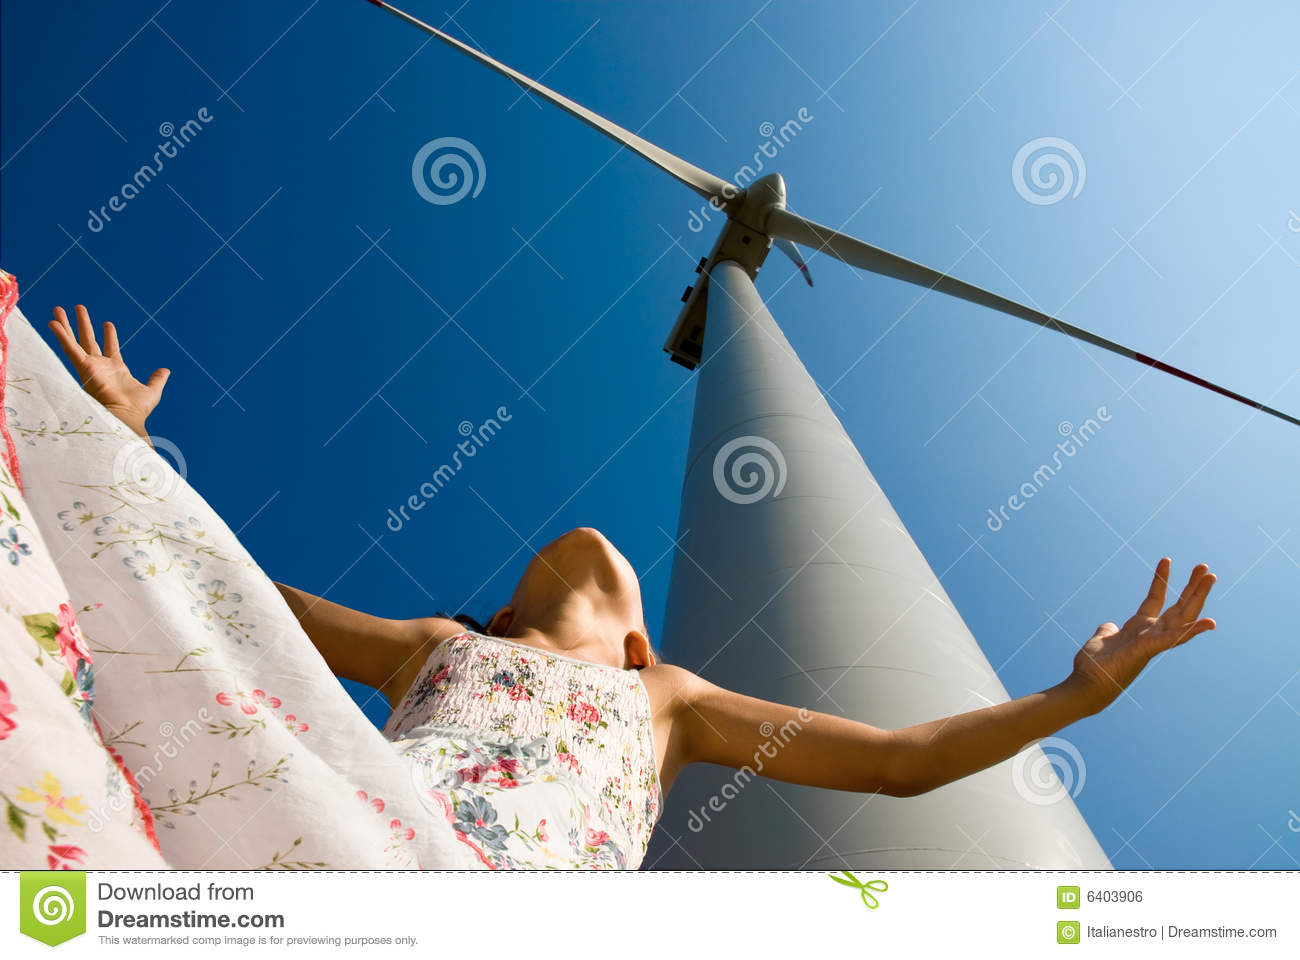 Clean energy for the children s future